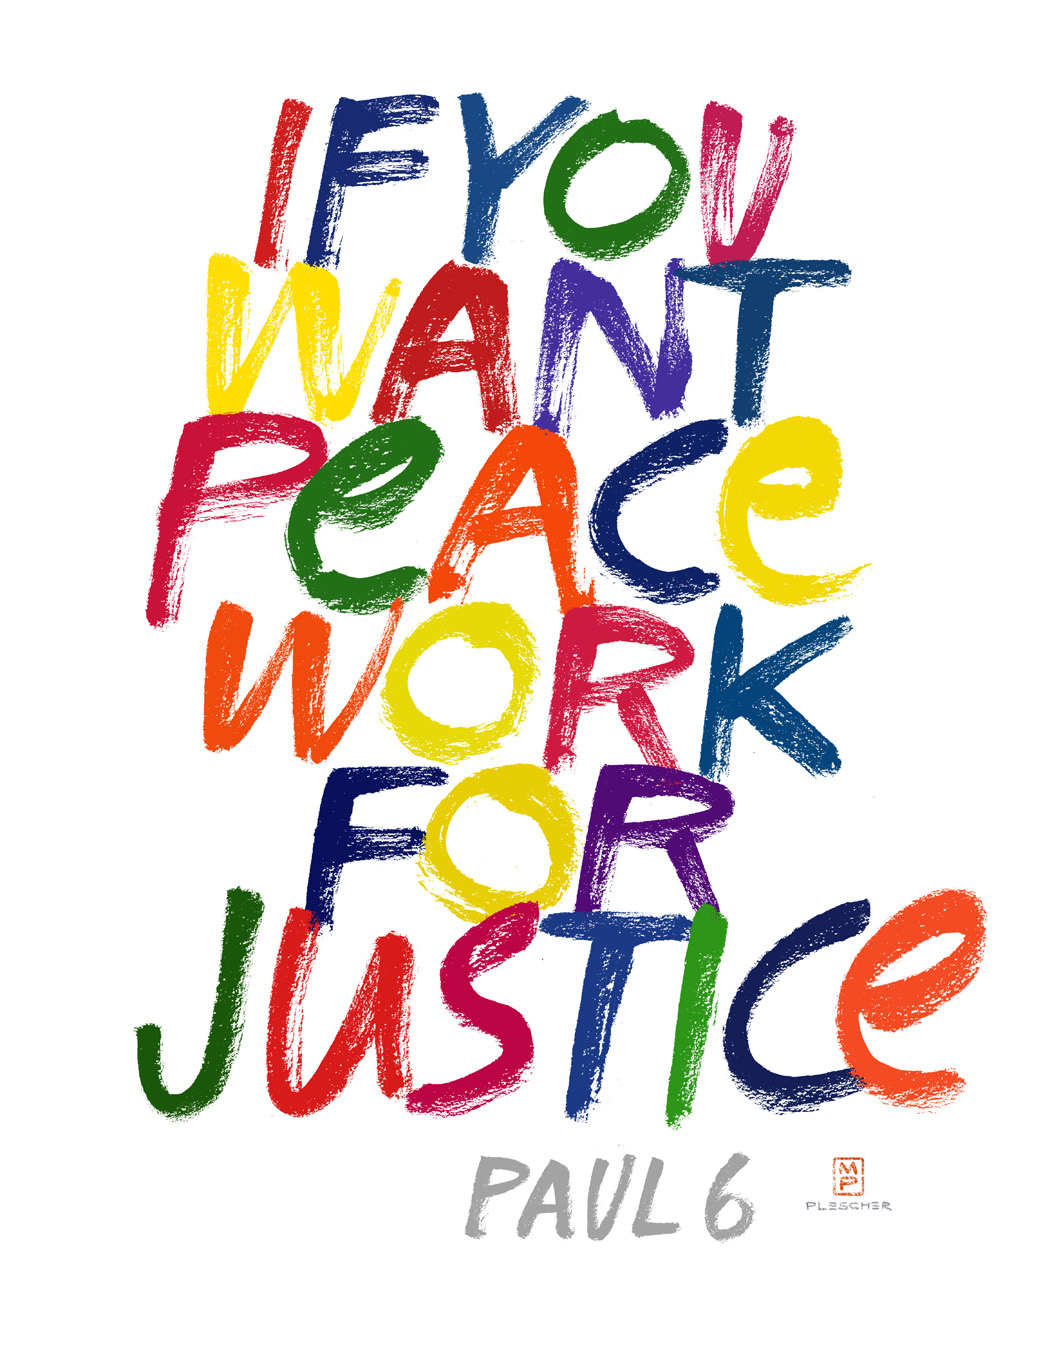 If you want justice work for peace